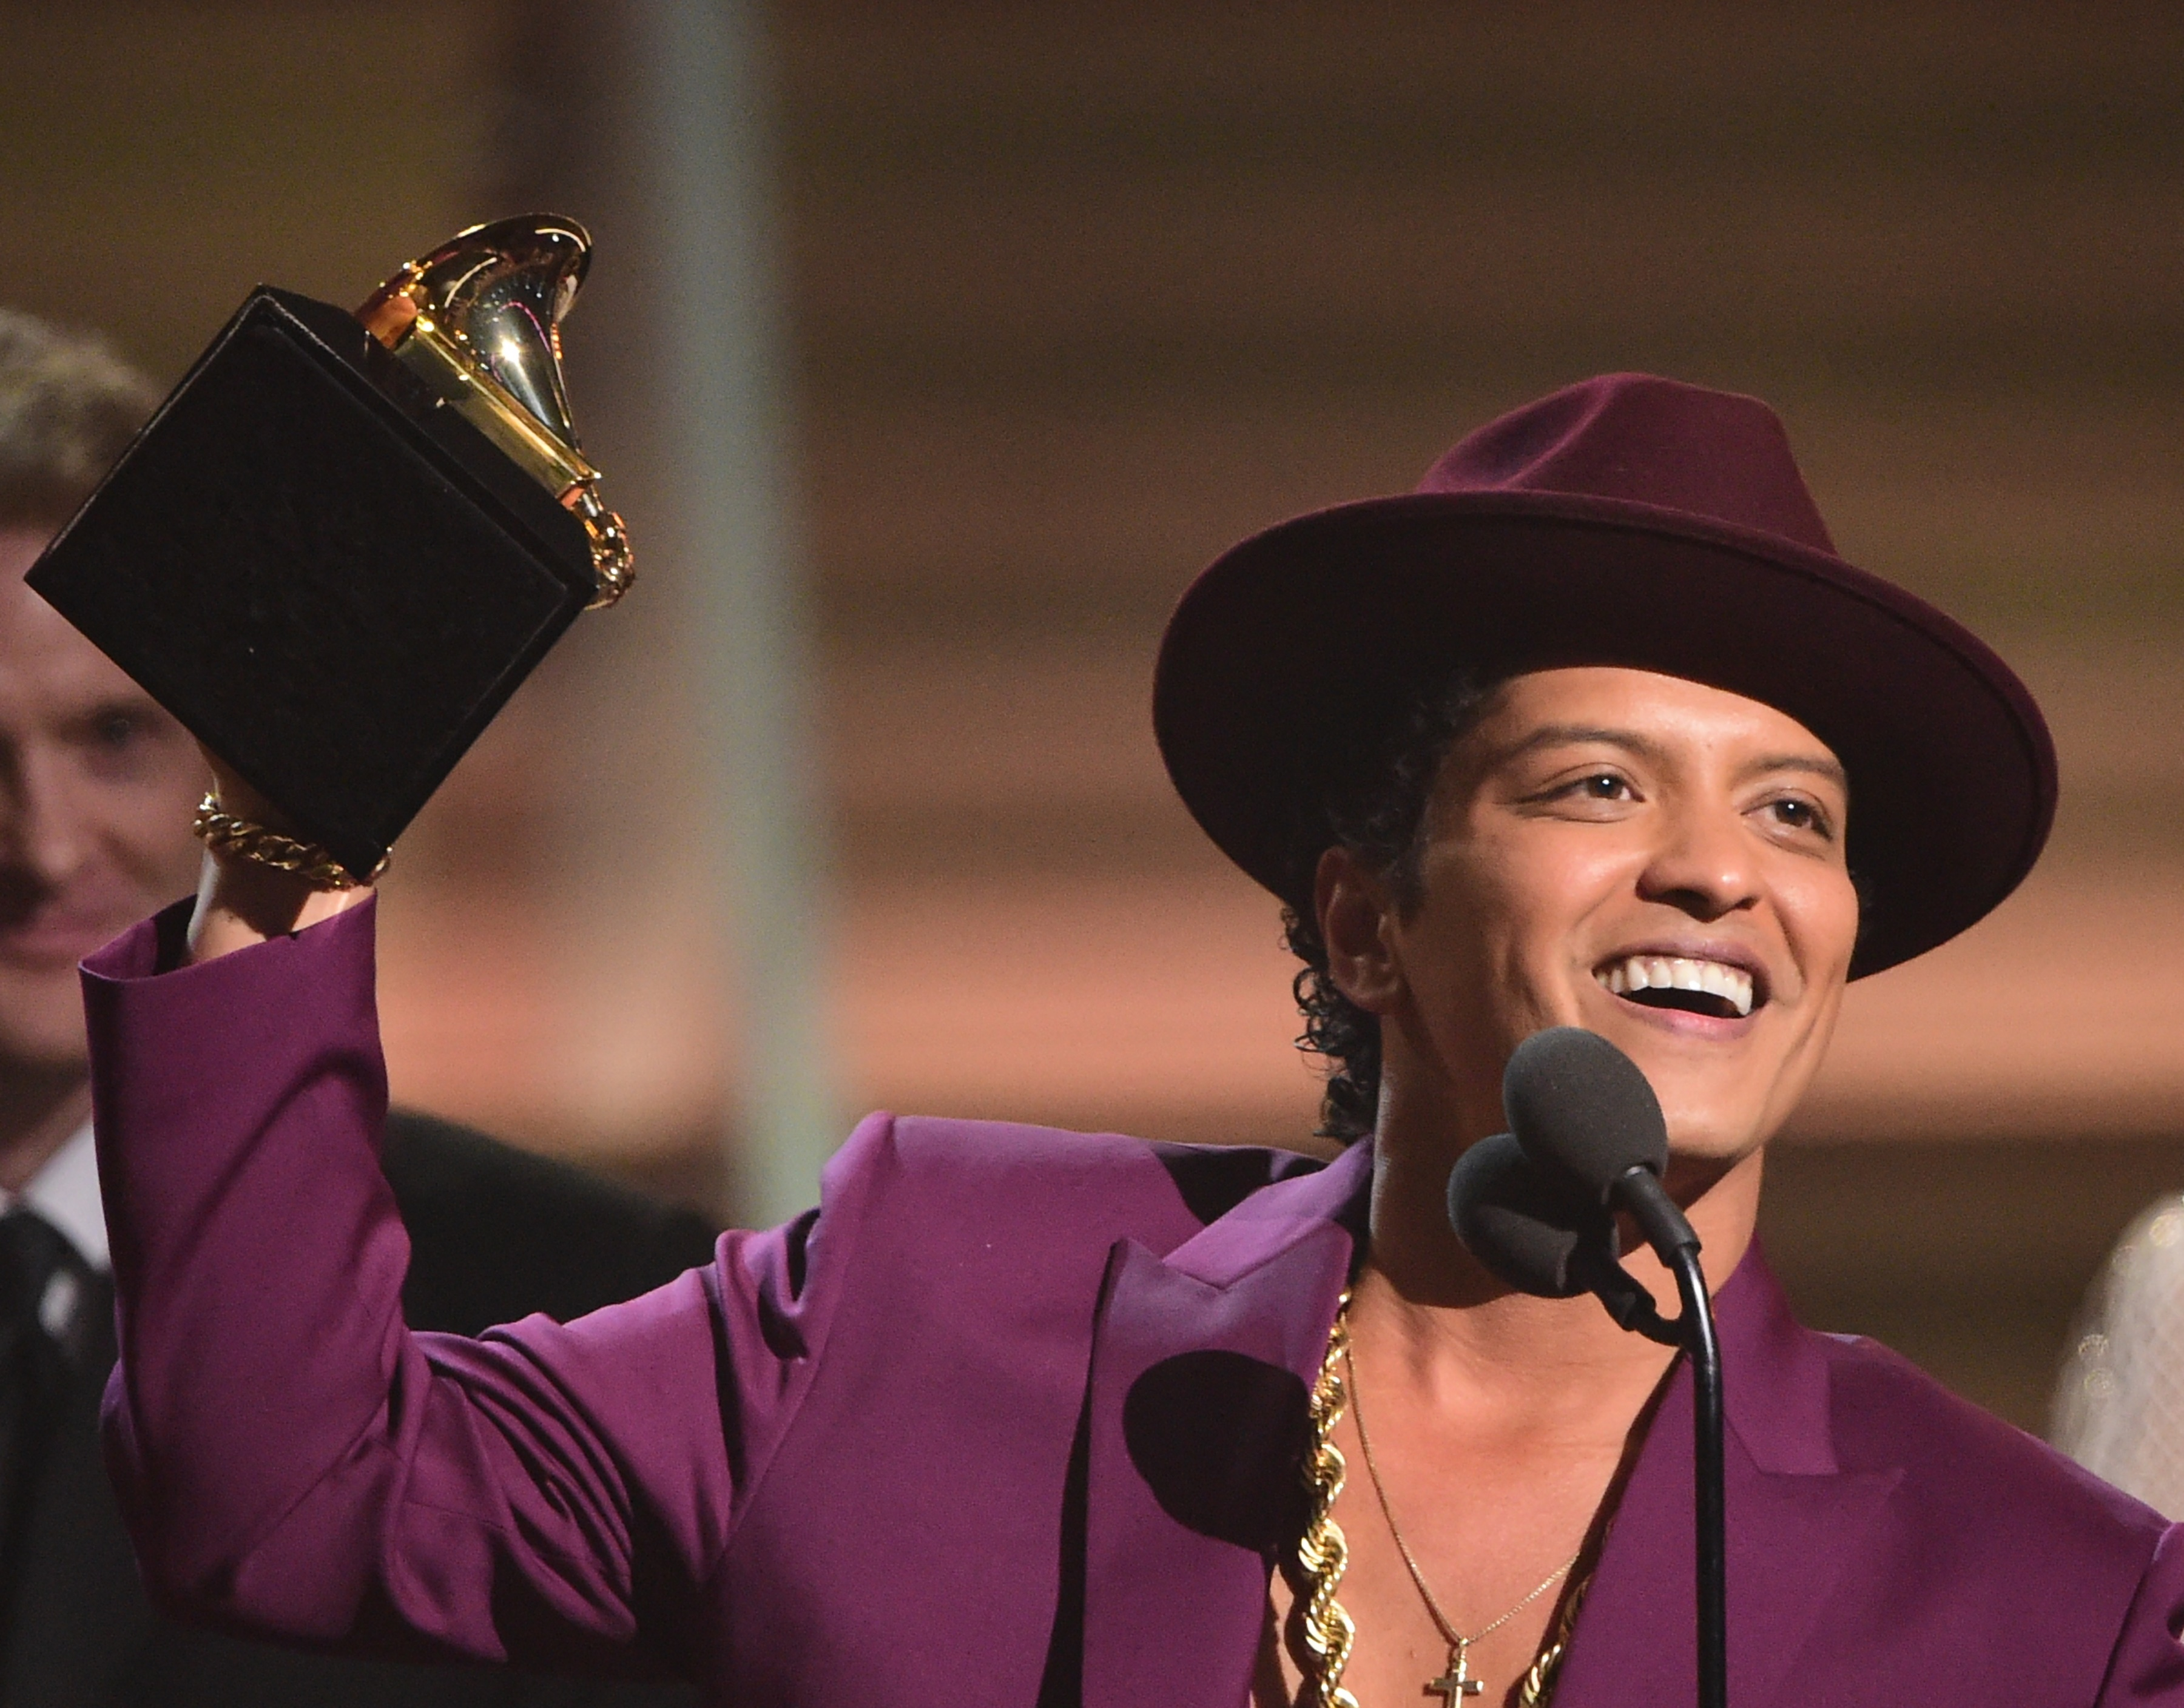 TOPSHOT - Singer Bruno Mars holds up the award for the Record of the Year, Uptown Funk onstage during the 58th Annual Grammy music Awards in Los Angeles February 15, 2016. AFP PHOTO/ ROBYN BECK / AFP / ROBYN BECK (Photo credit should read ROBYN BECK/AFP/Getty Images)